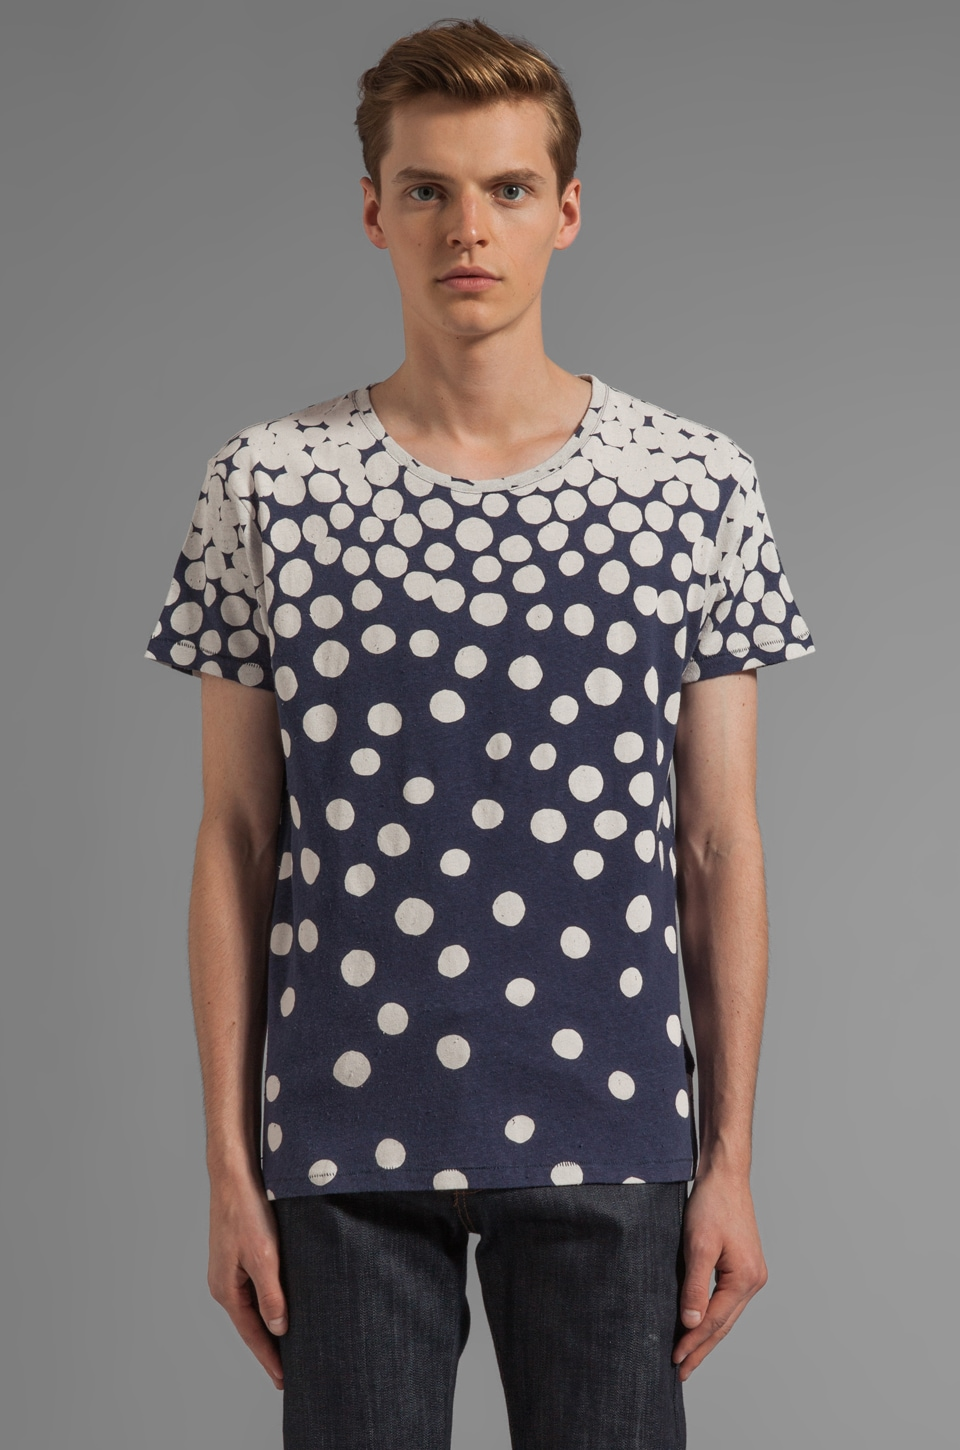 LEVI'S: Made & Crafted Bay Tee in Spots Gradation